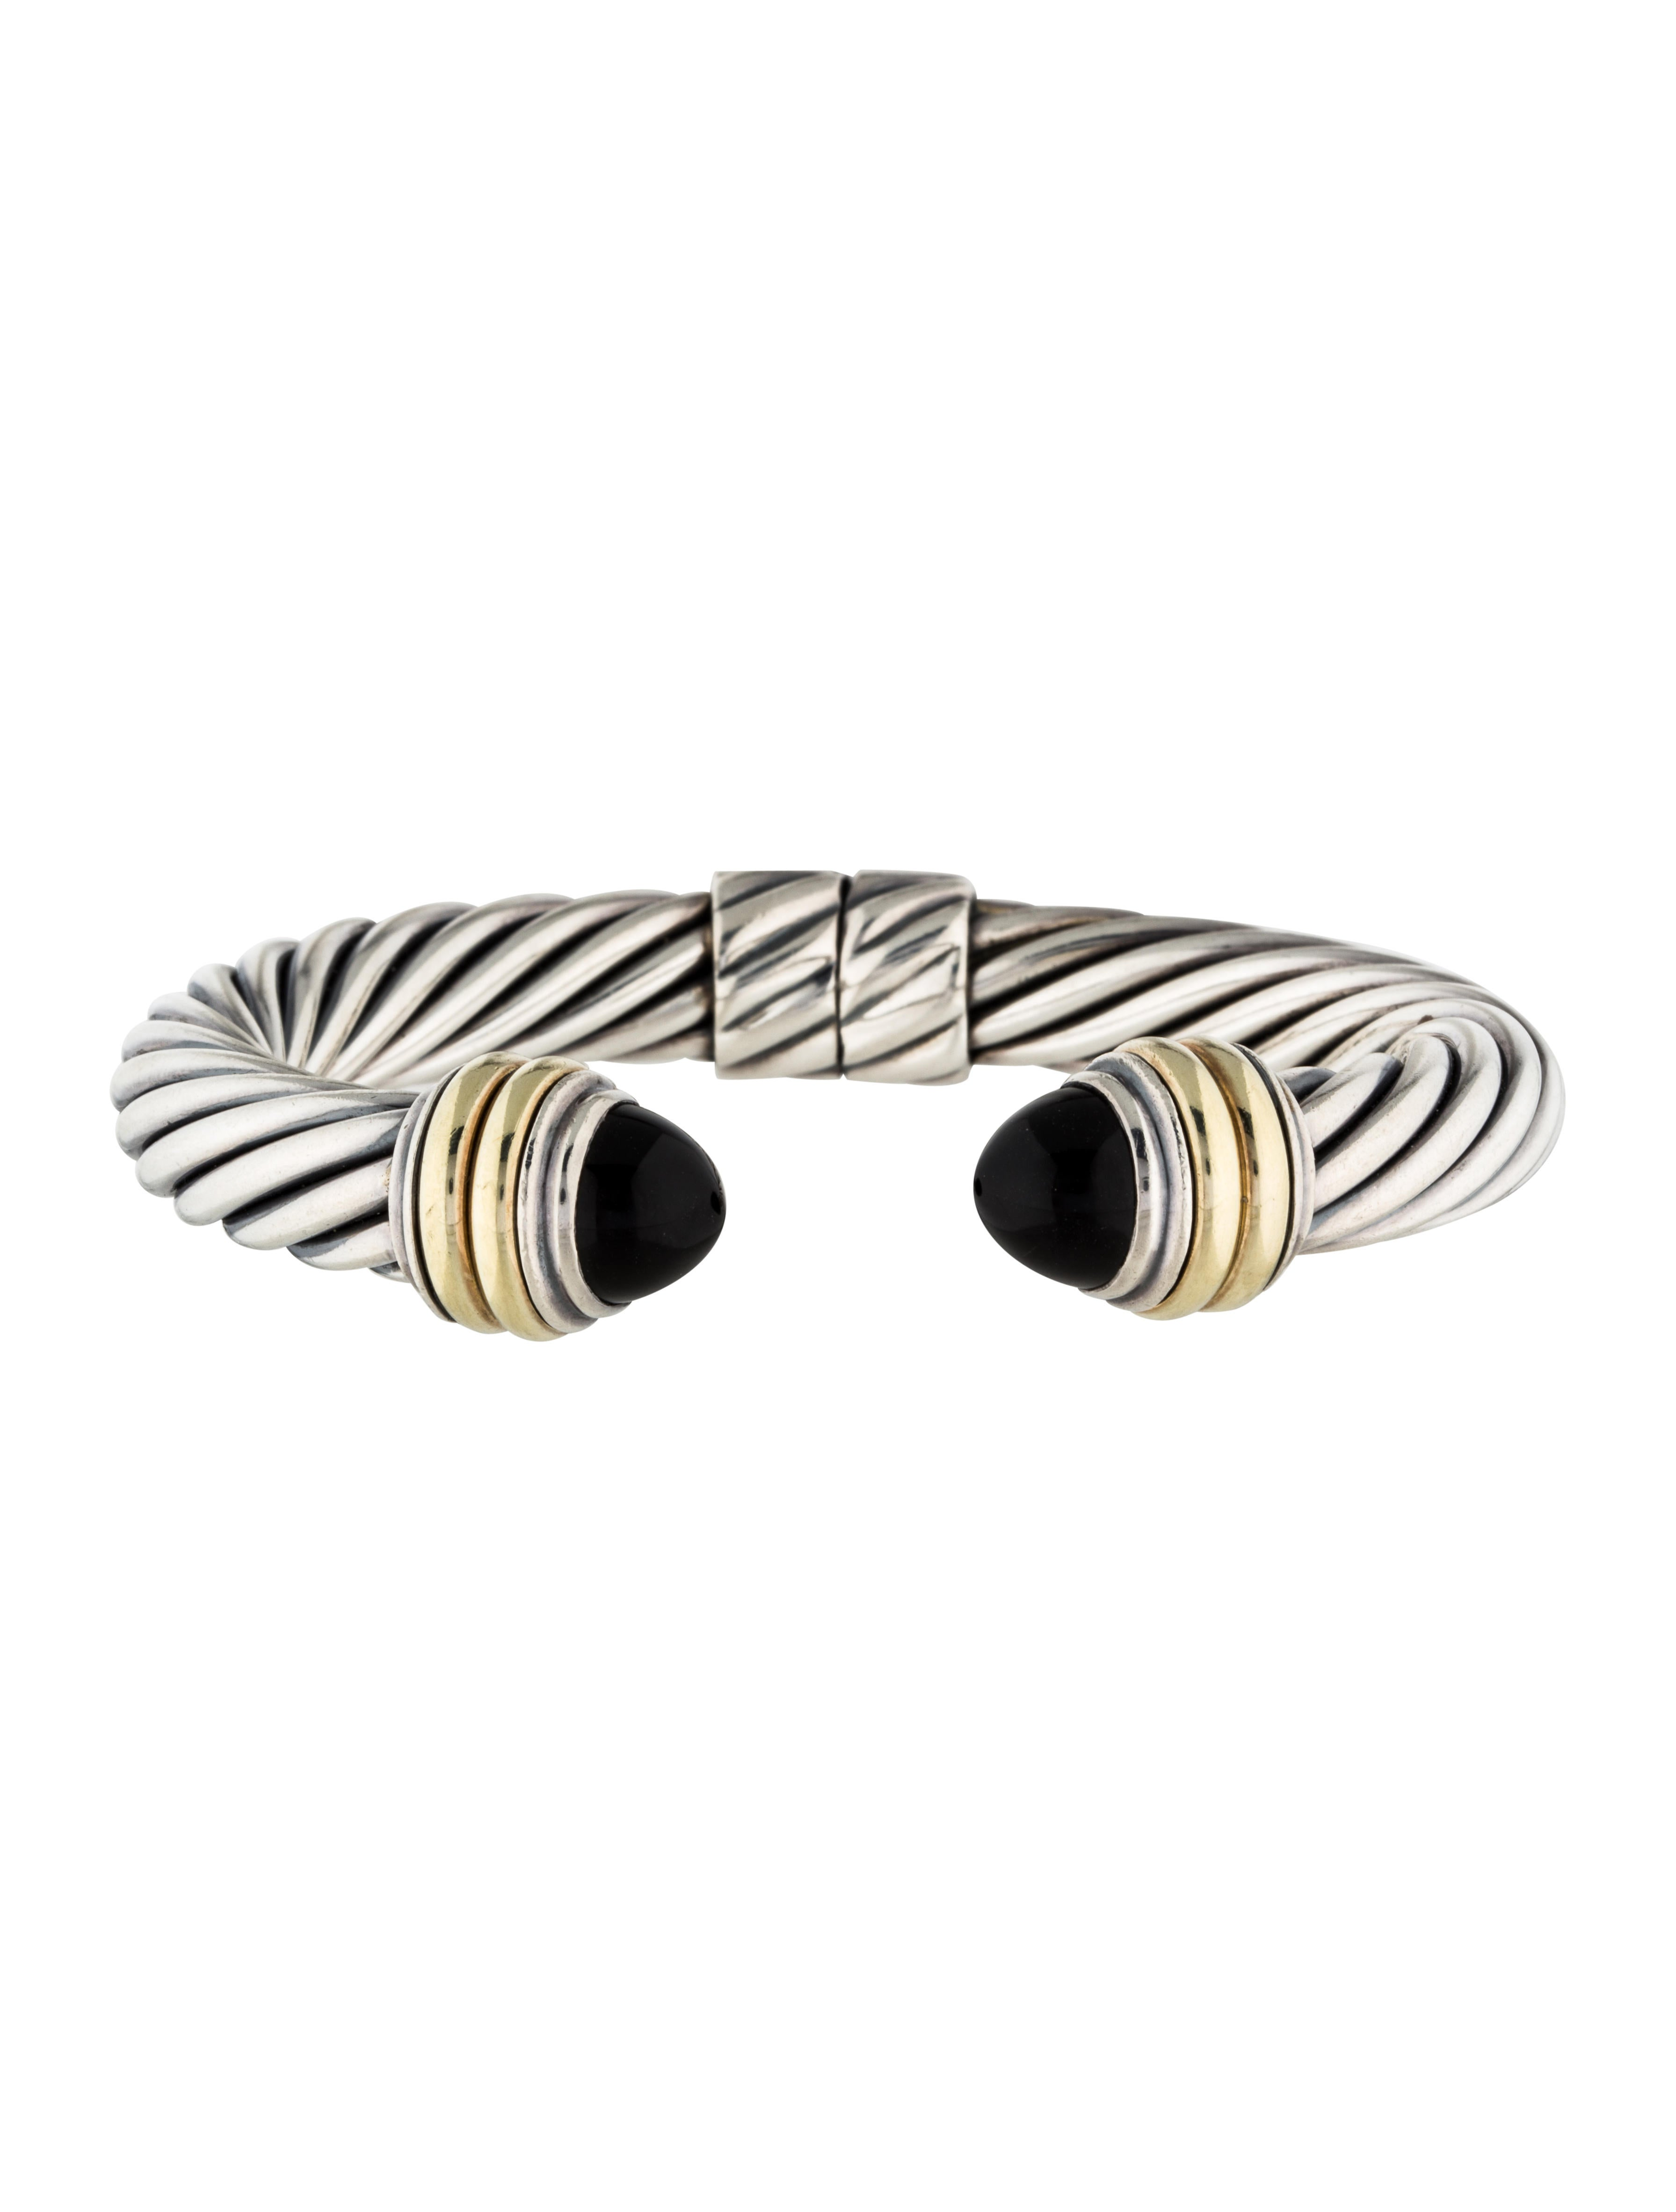 David yurman onyx cable classics bracelet bracelets for David yurman inspired bracelet cable